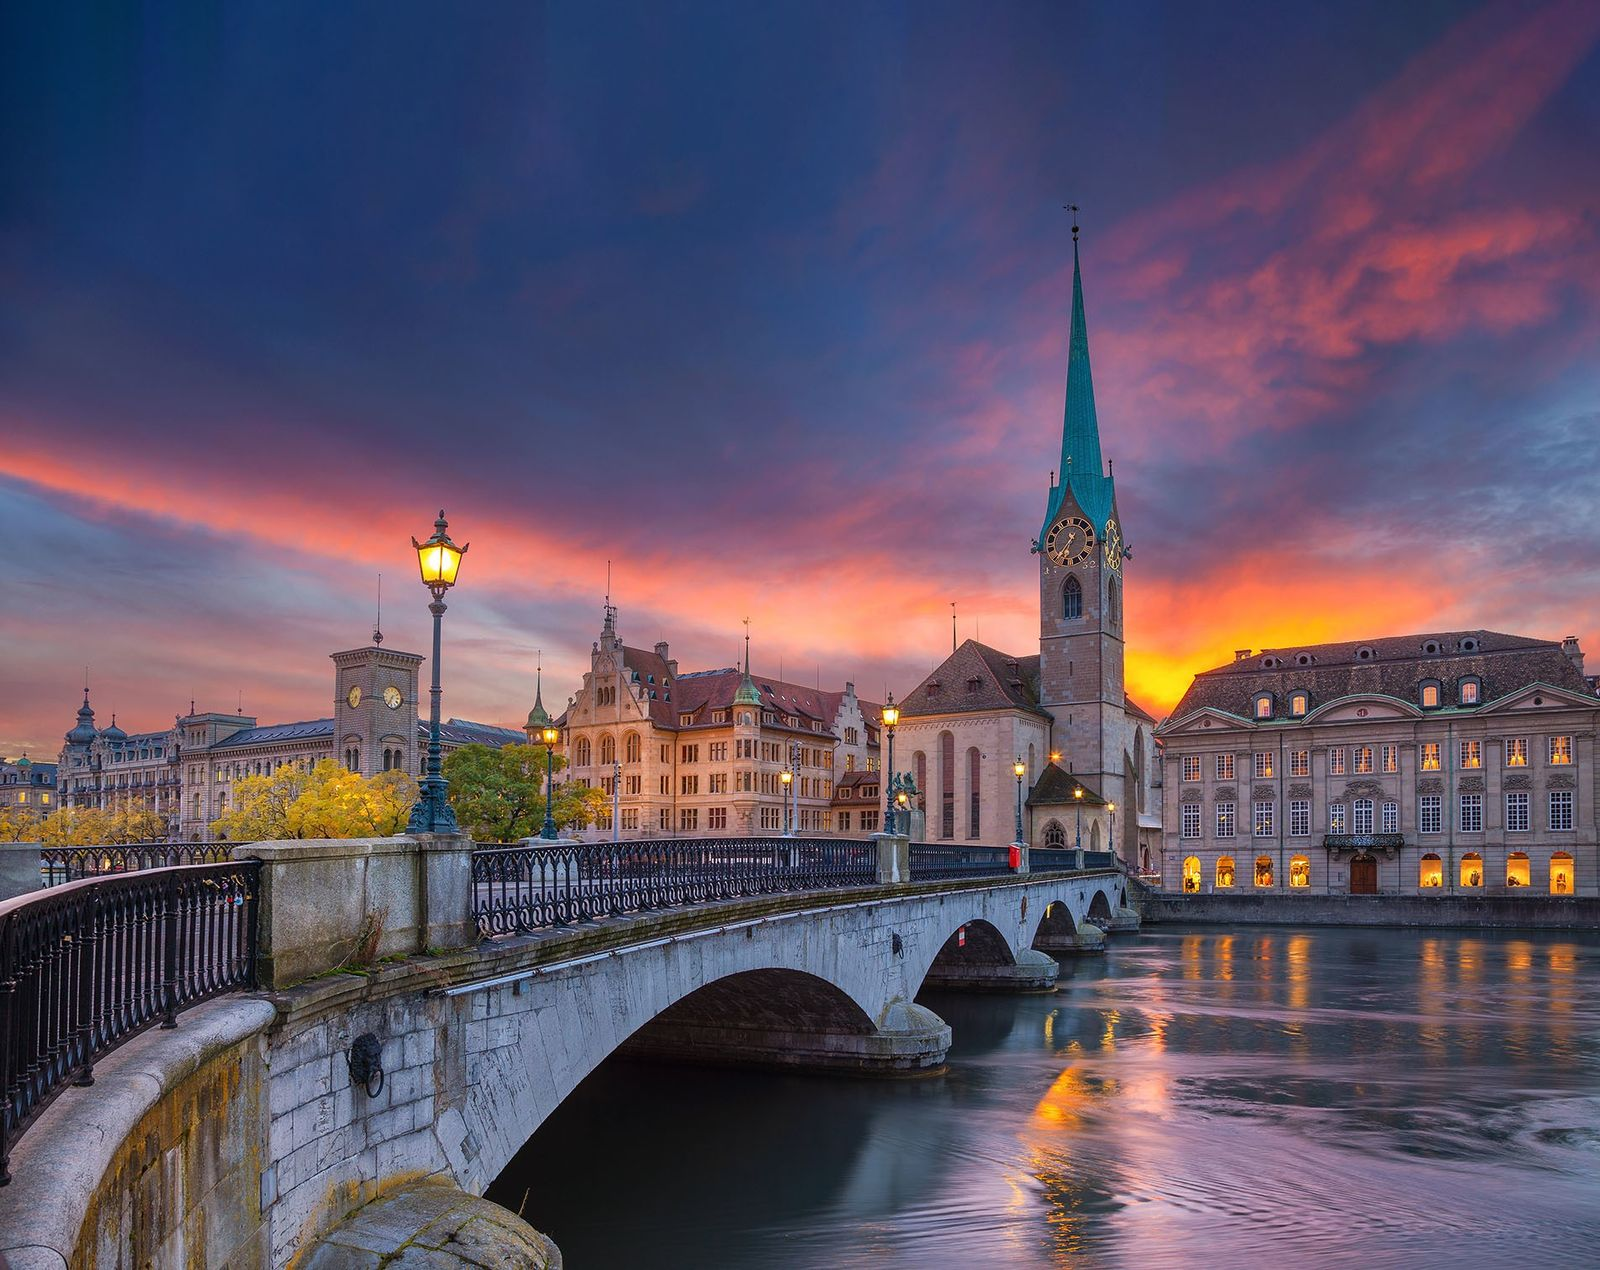 How to spend 24 hours in Zurich, according to award-winning mixologist Dirk Hany